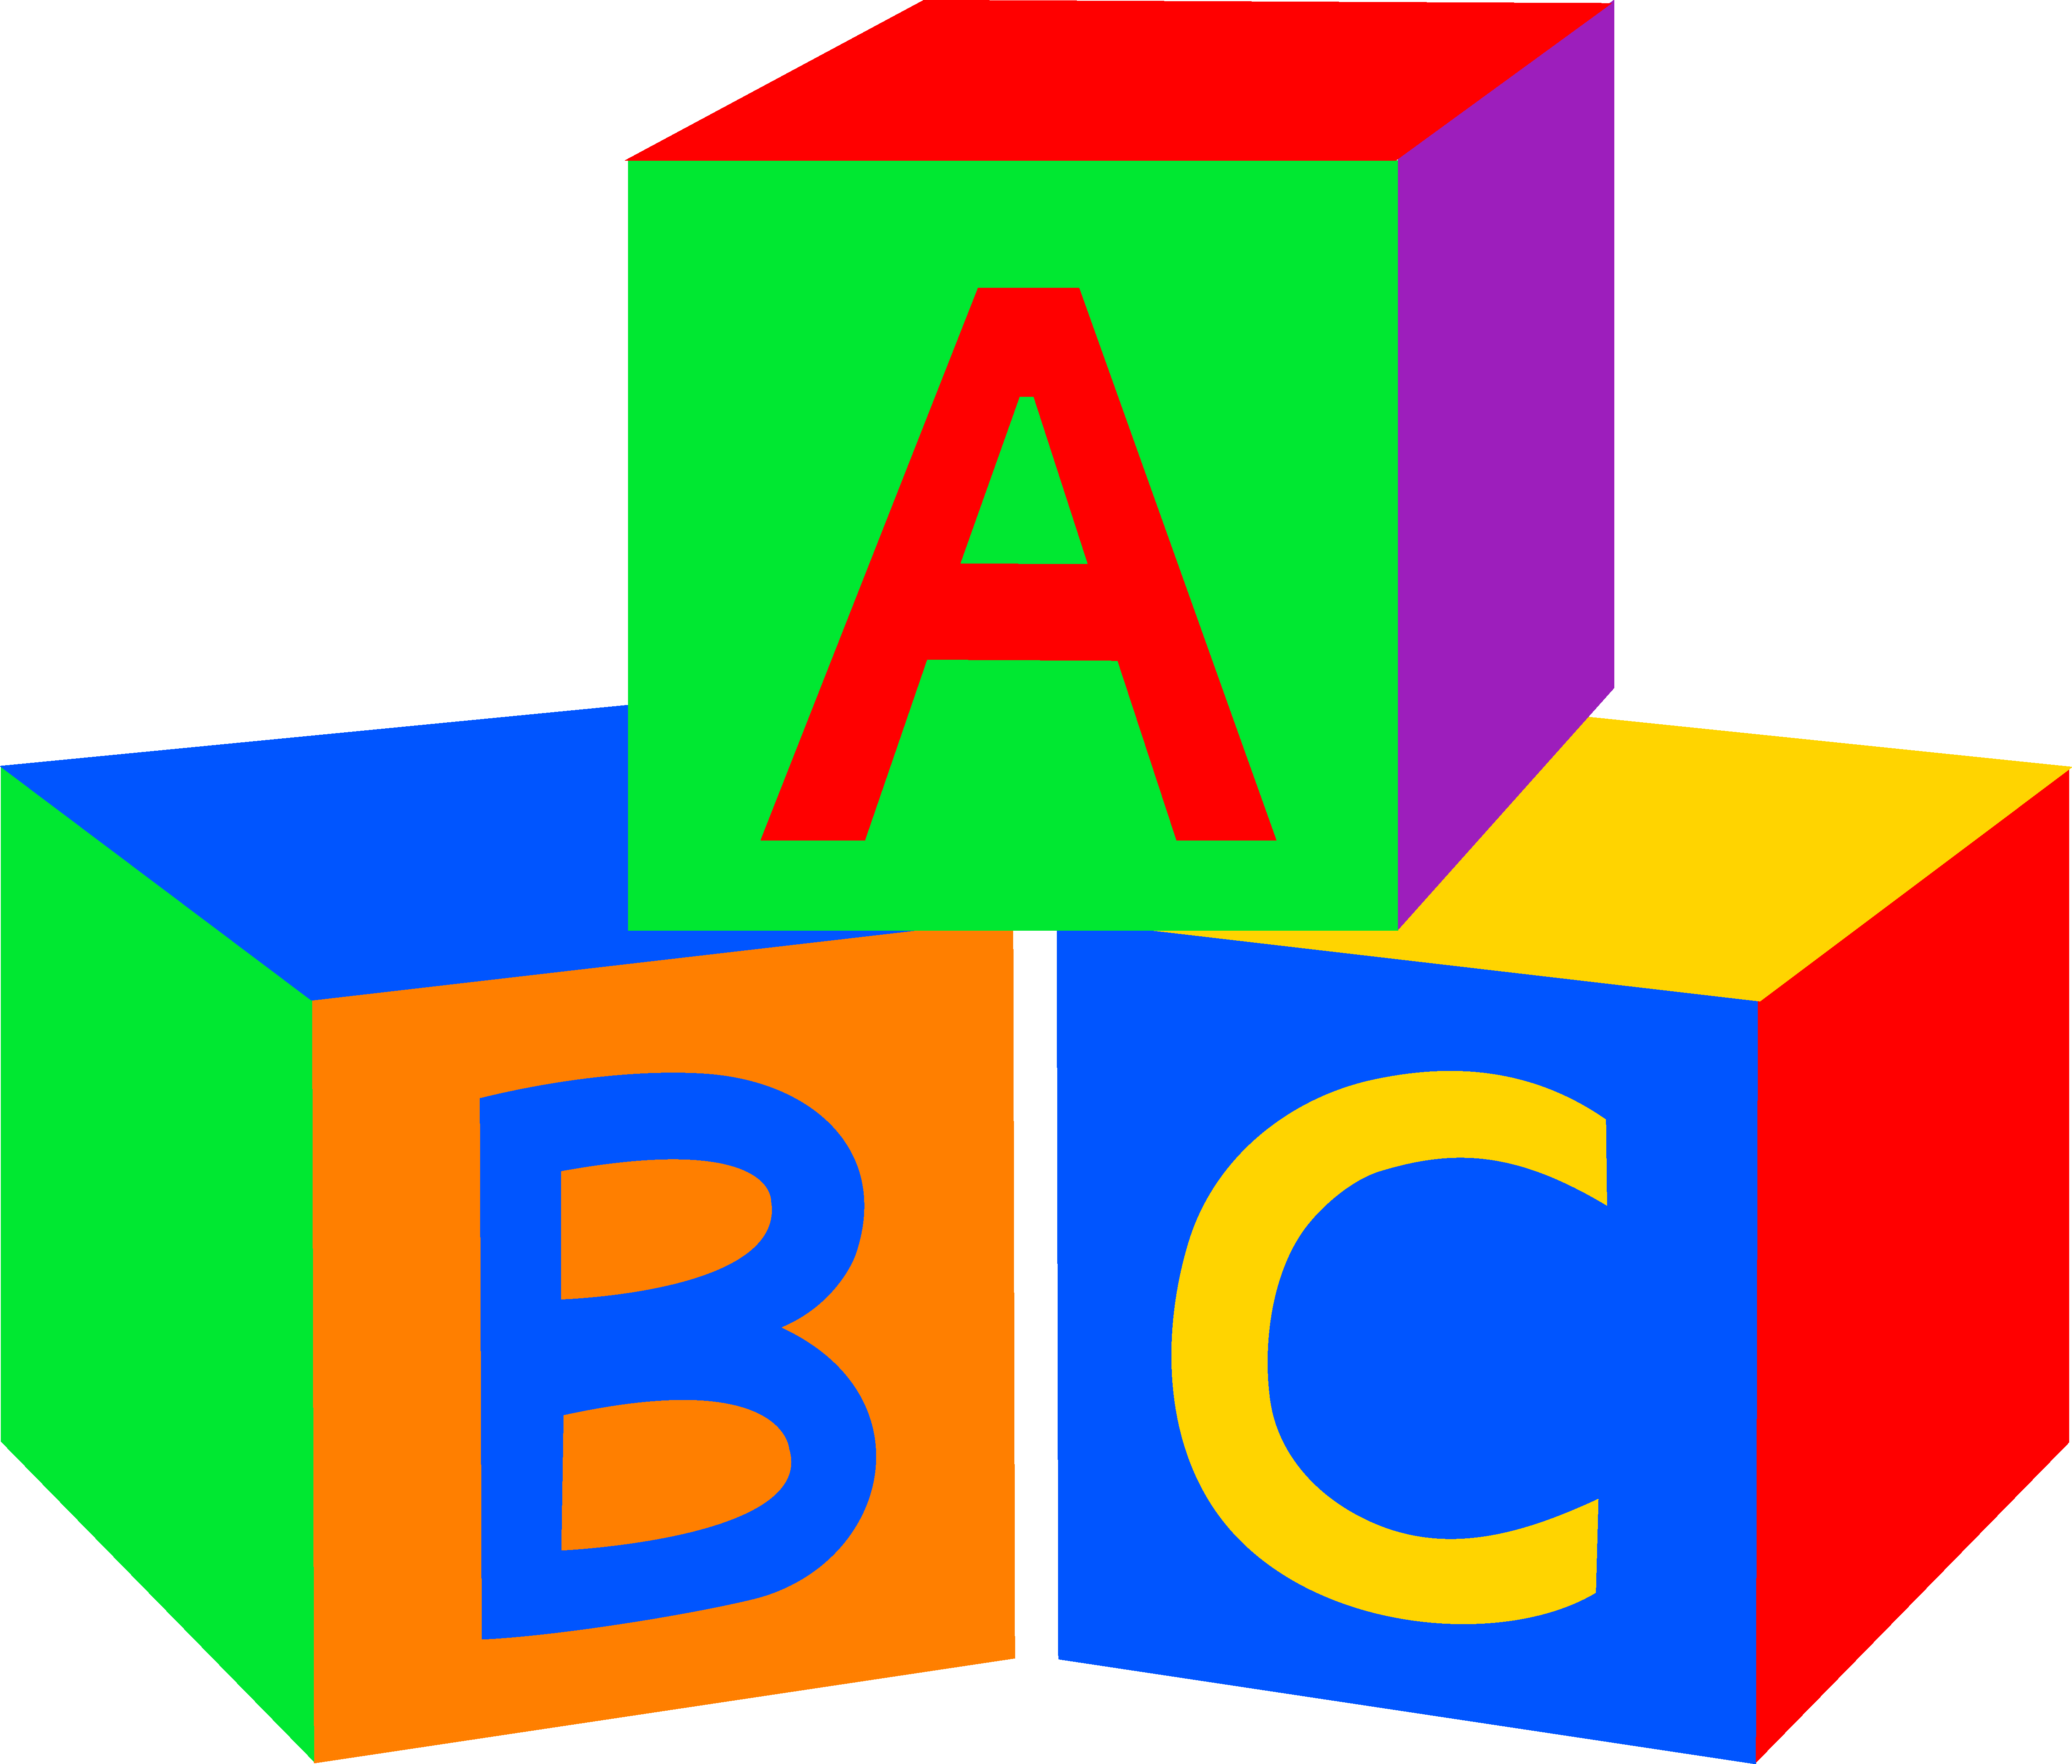 Free pictures baby abc. Clipart toys block